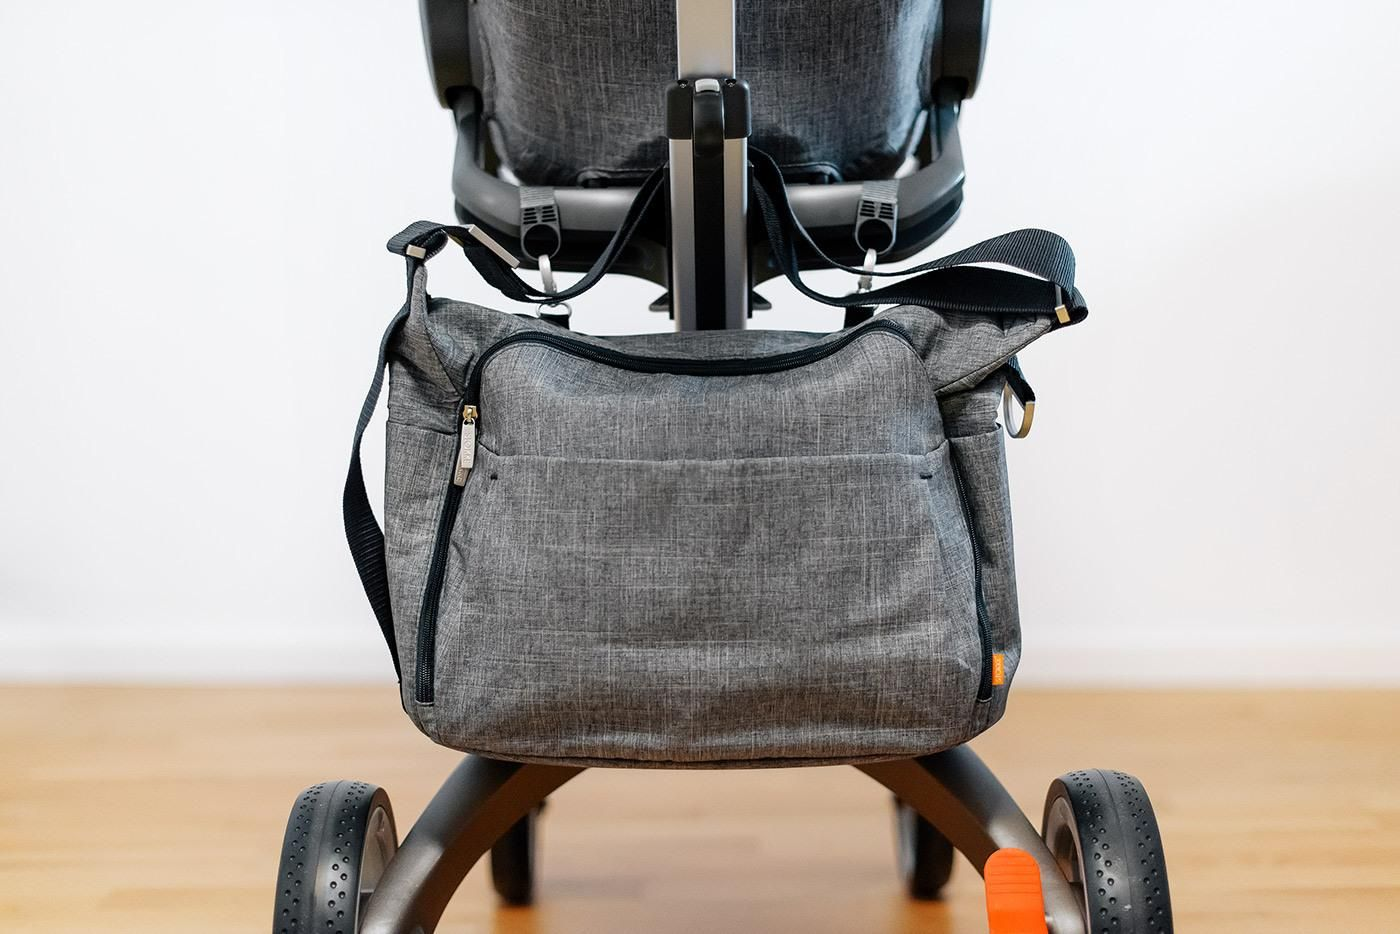 Setting Up My Nursery (With images) Stokke stroller